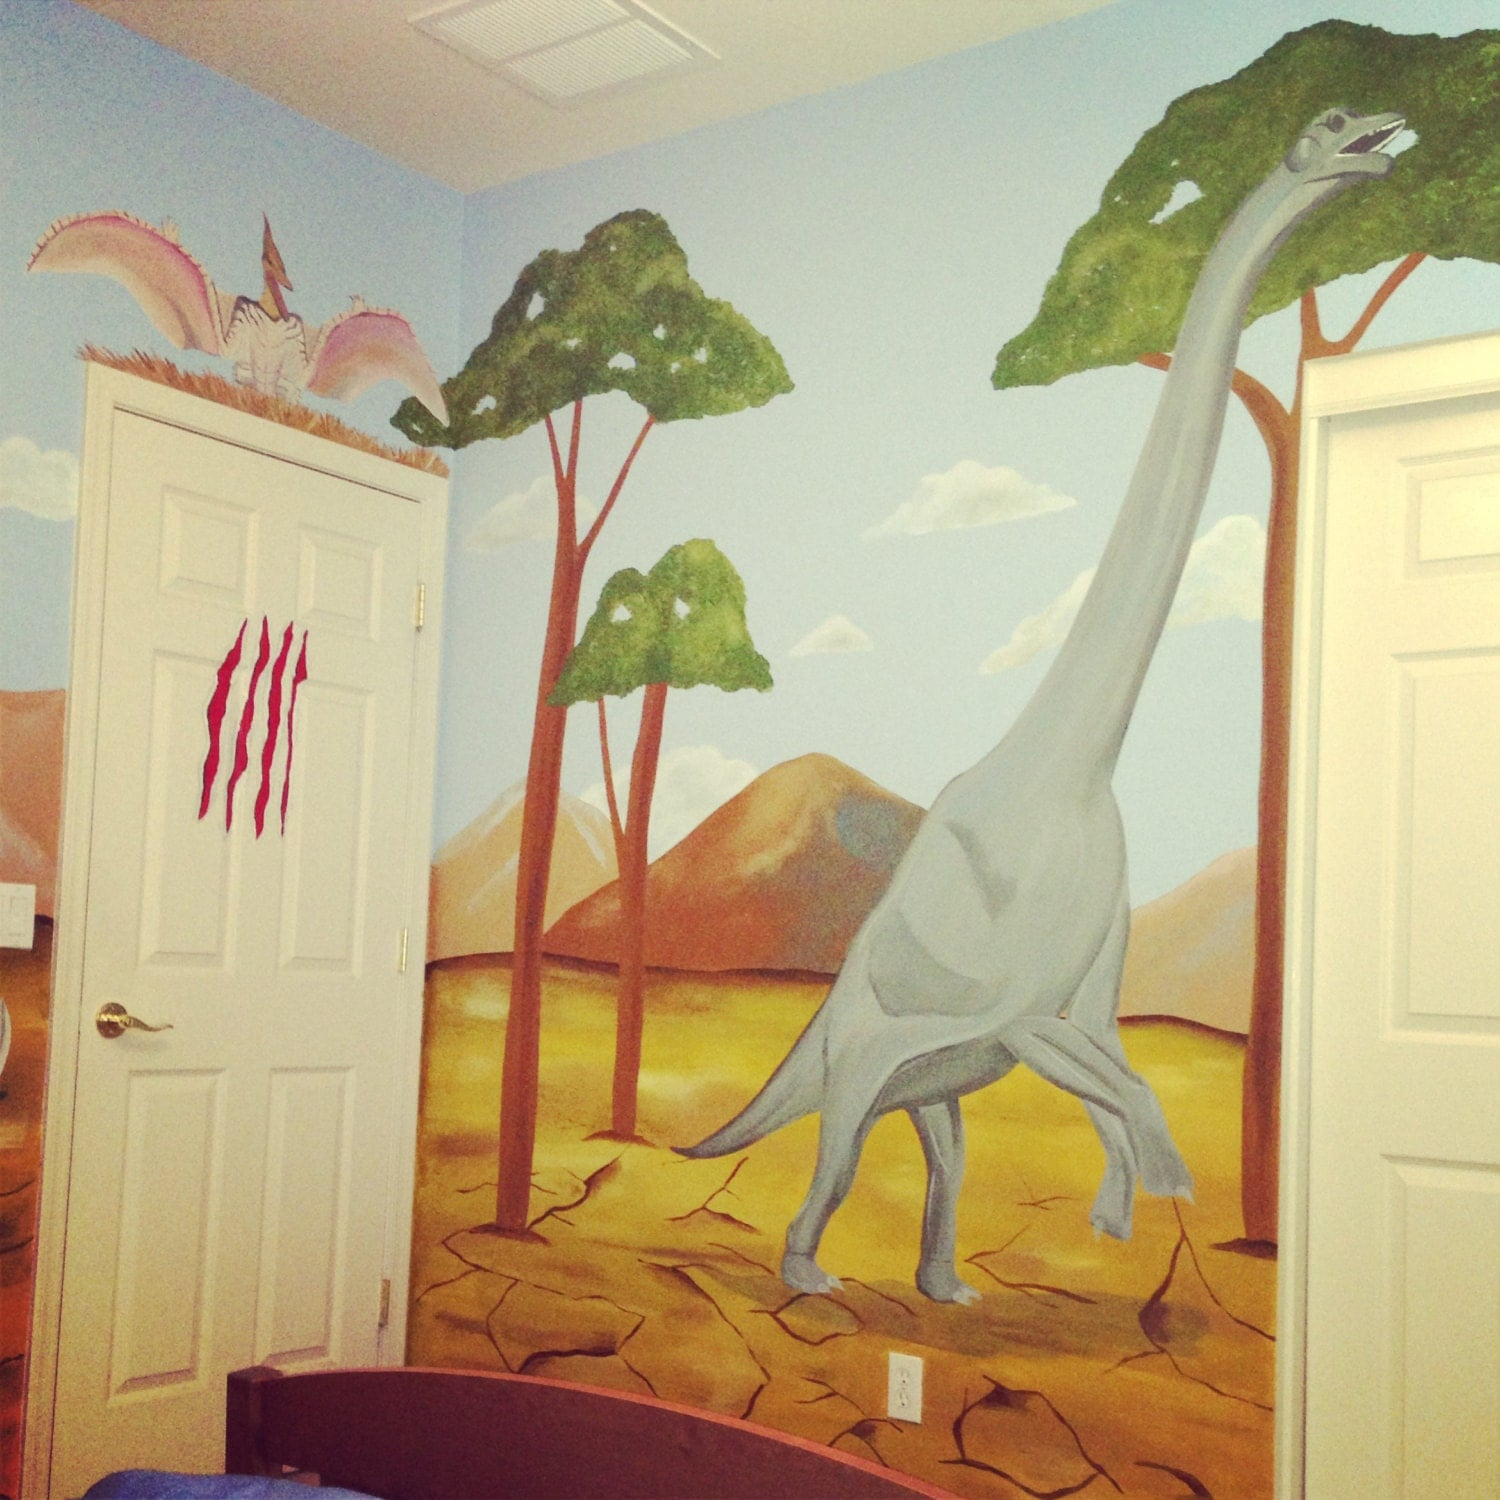 Dinosaur wall mural dinosaur mural murals for kids dinosaur for Dinosaur mural ideas